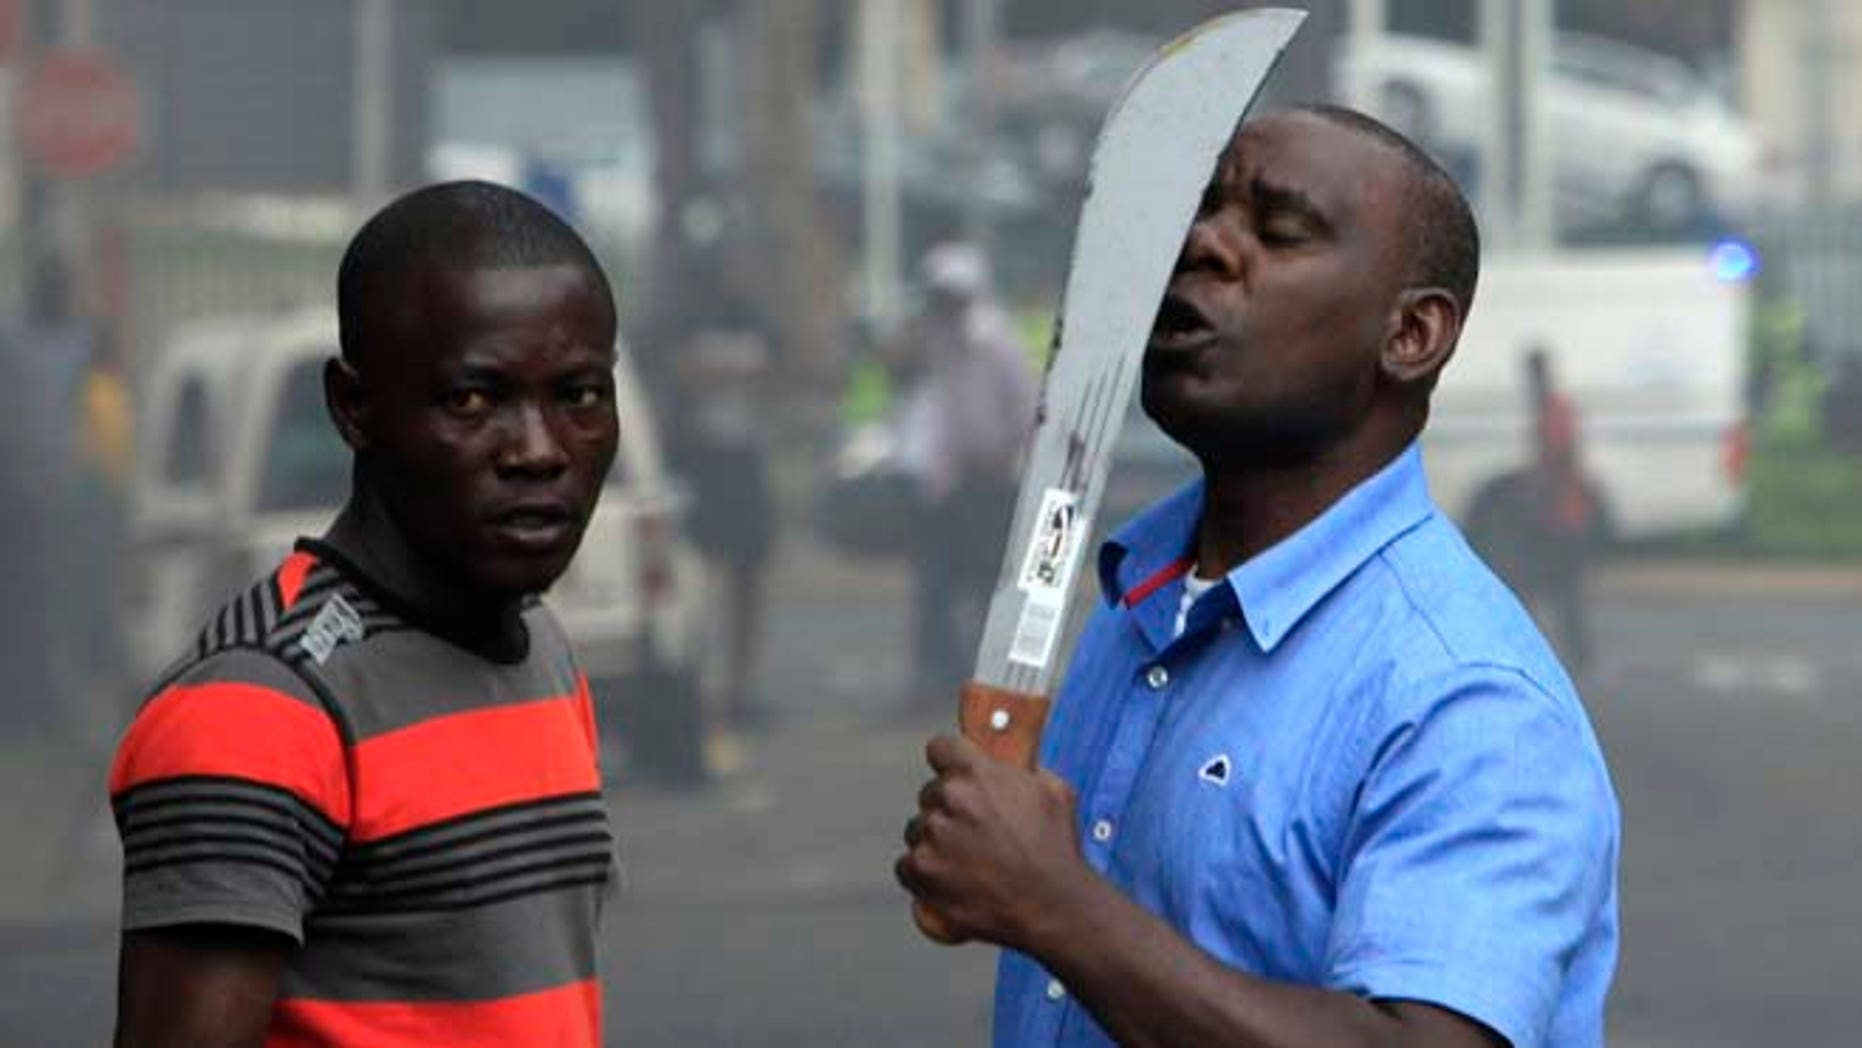 April 14, 2015: In this photo taken in  Durban, South Africa, an immigrant armed with a machete on a street during clashes with police and in search of locals that attacked foreign shop owners in the city center.